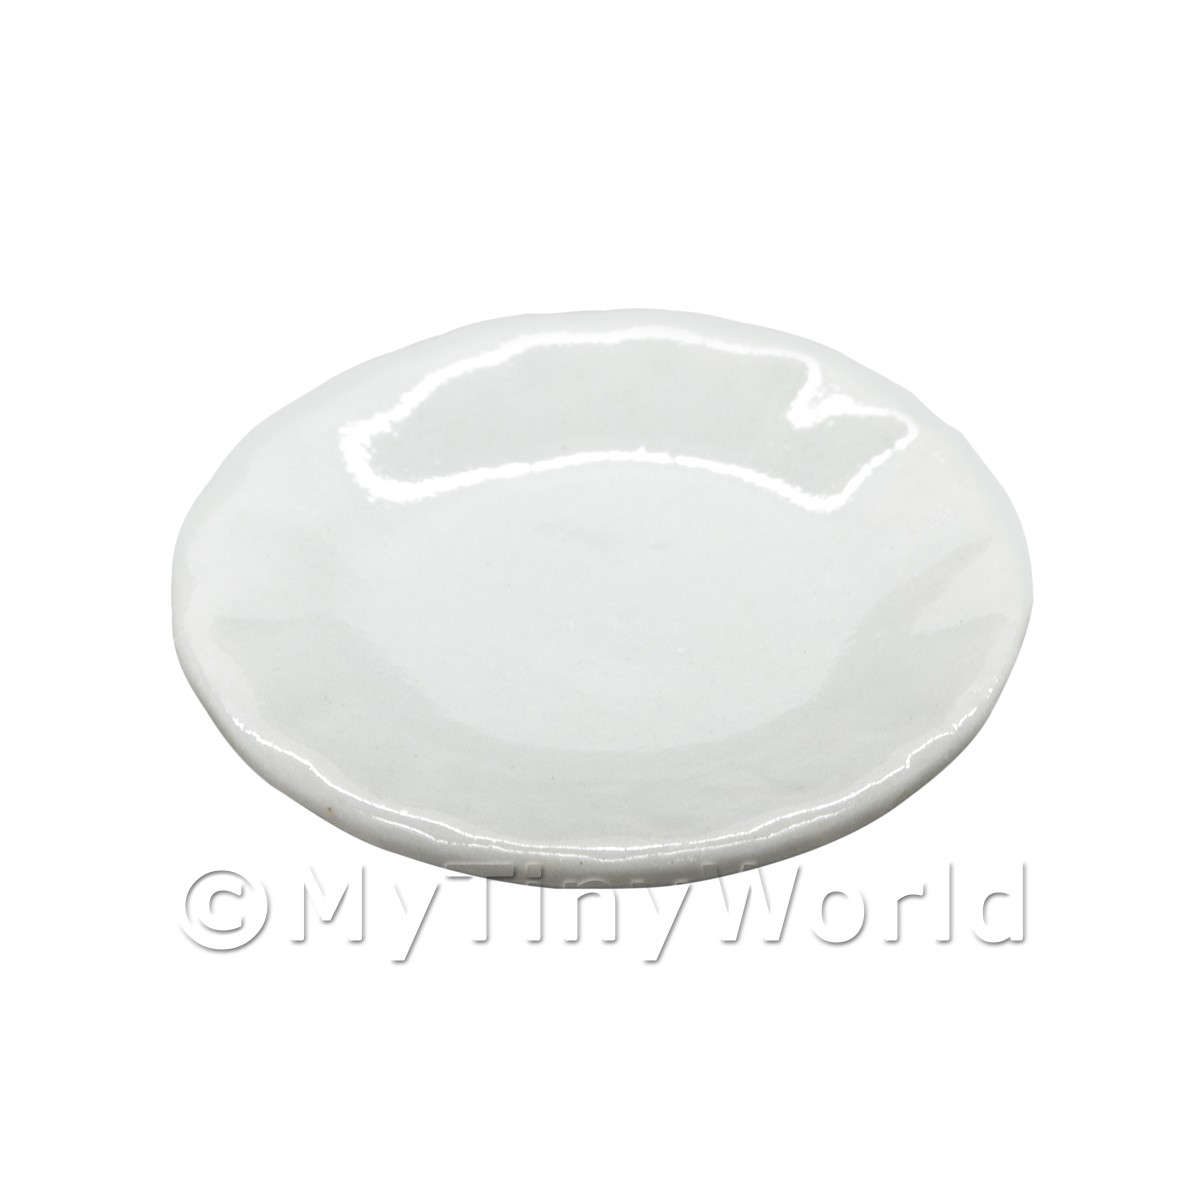 25mm Dolls House Miniature White Glazed Ceramic Plate With Fluted Edge